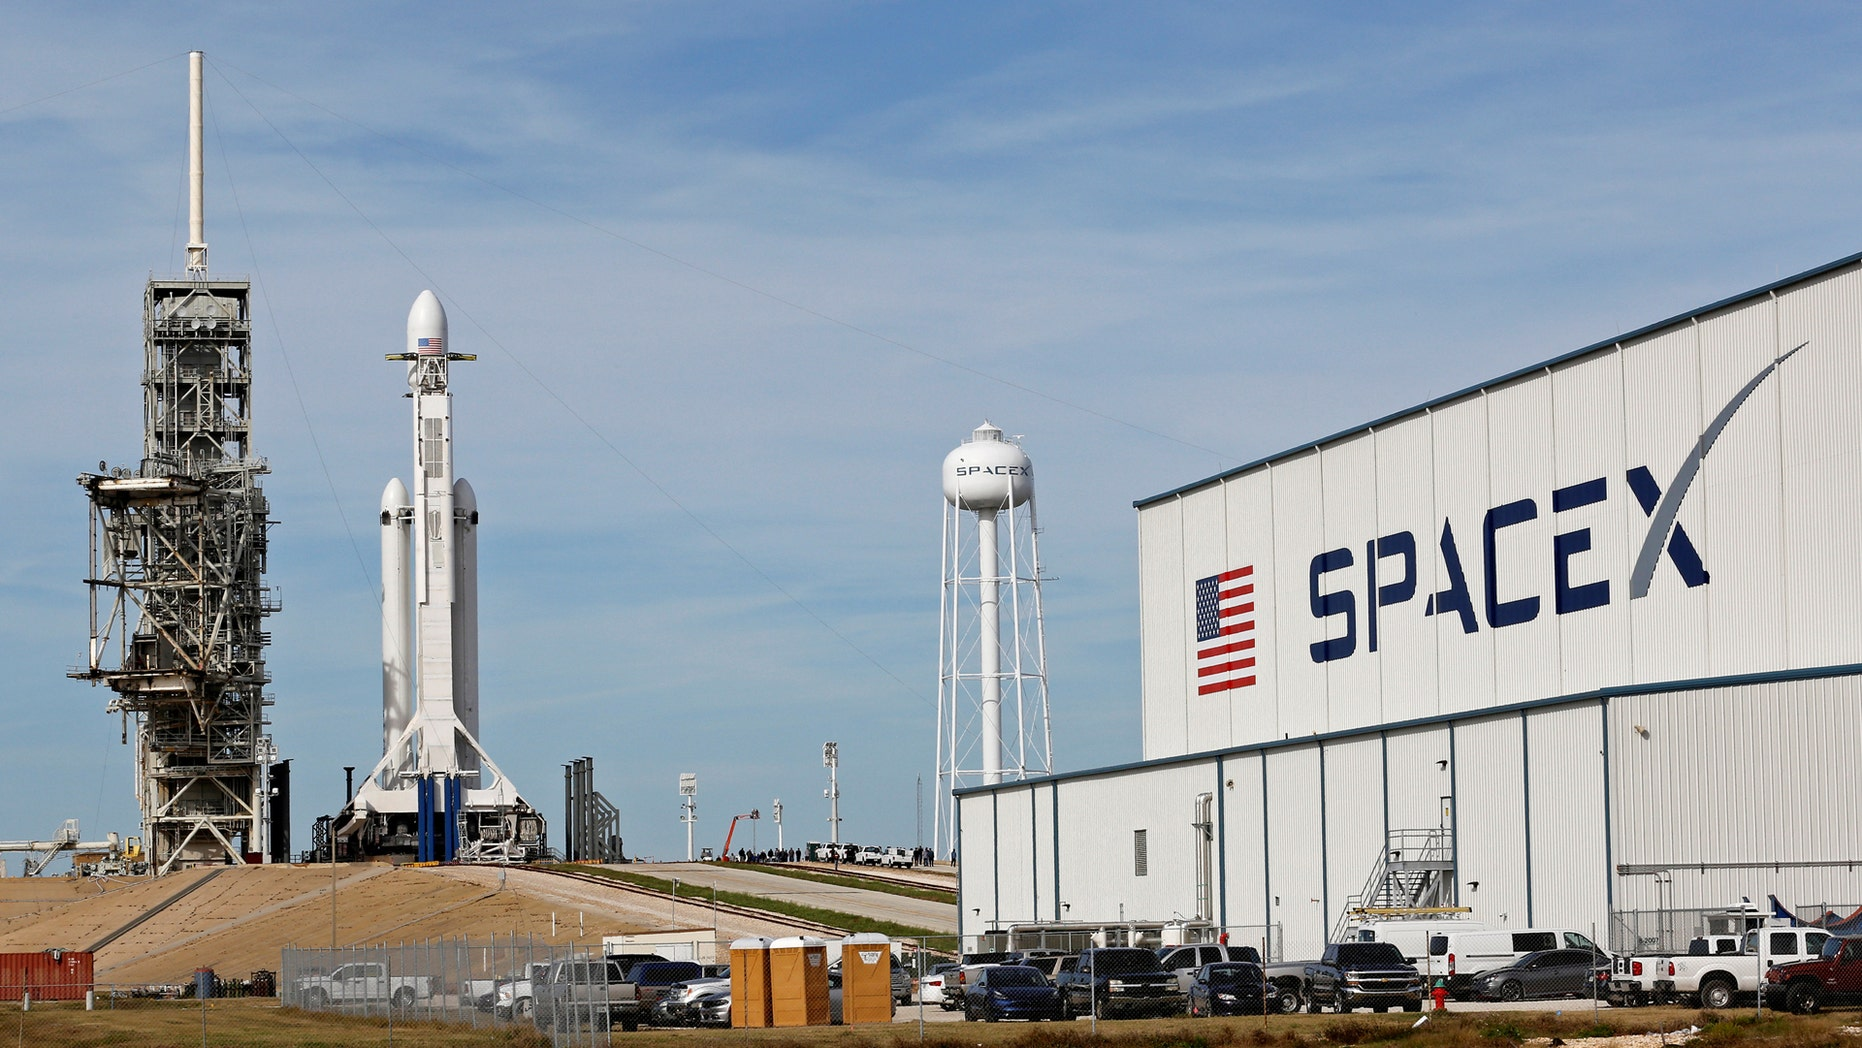 File photo: A SpaceX Falcon Heavy rocket stands on historic launch pad 39A as it is readied for its first demonstration flight at the Kennedy Space Center in Cape Canaveral, Florida, U.S., February 5, 2018. (REUTERS/Joe Skipper)